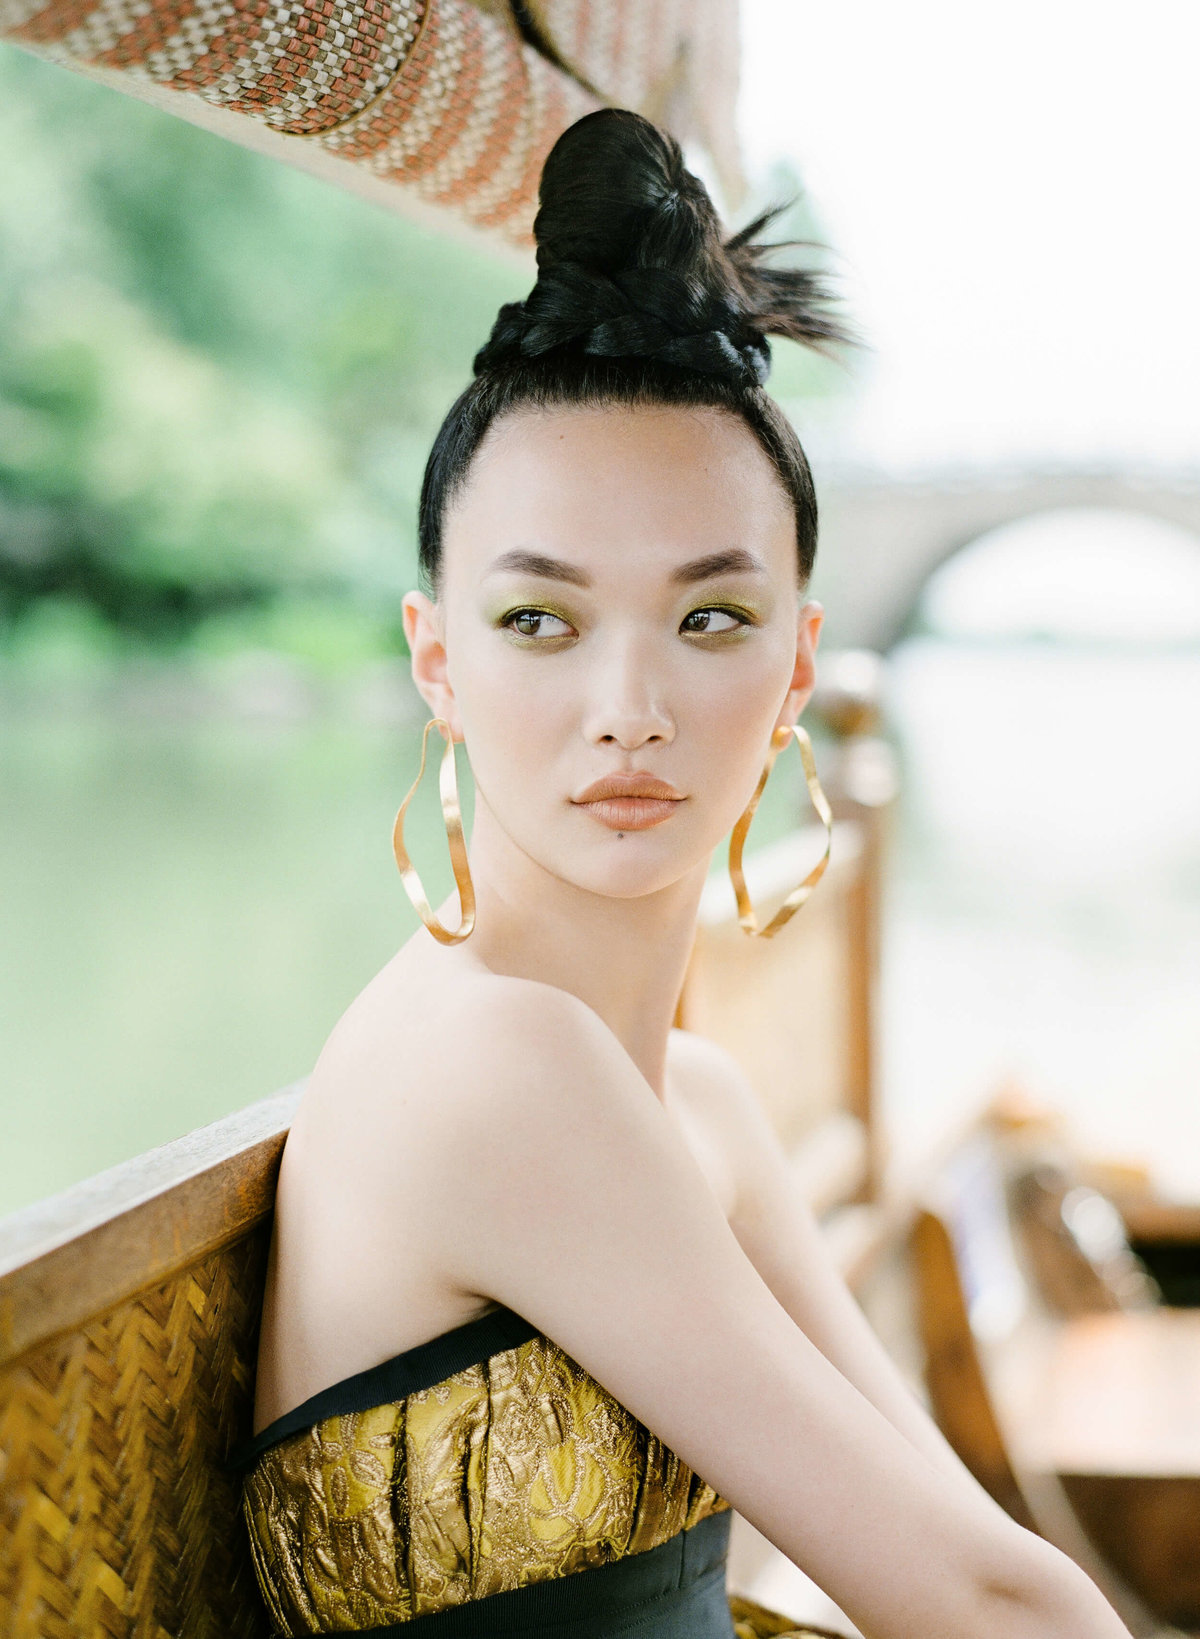 3-KTMerry-HarpersBazaar-Chinese-bride-hautecouture-gold